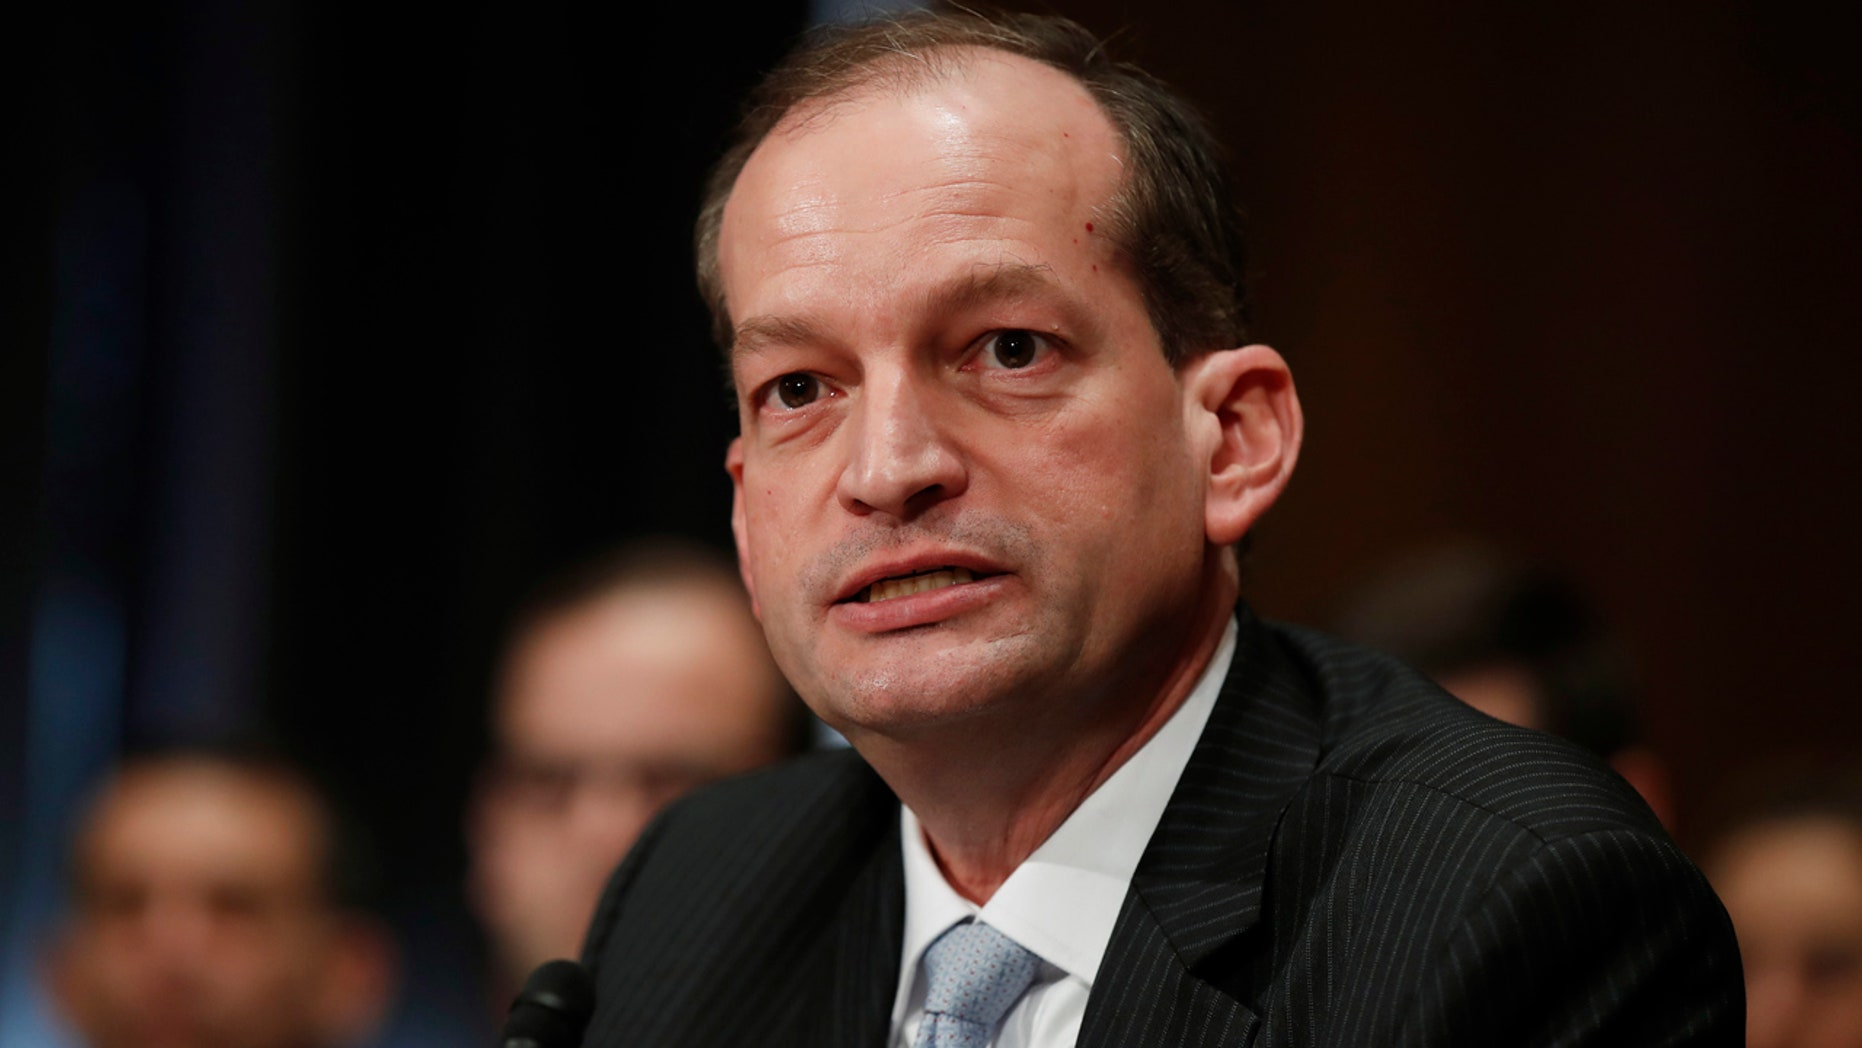 In this March 22, 2017, file photo, the labor secretary-designate, Alexander Acosta, testifies on Capitol Hill.